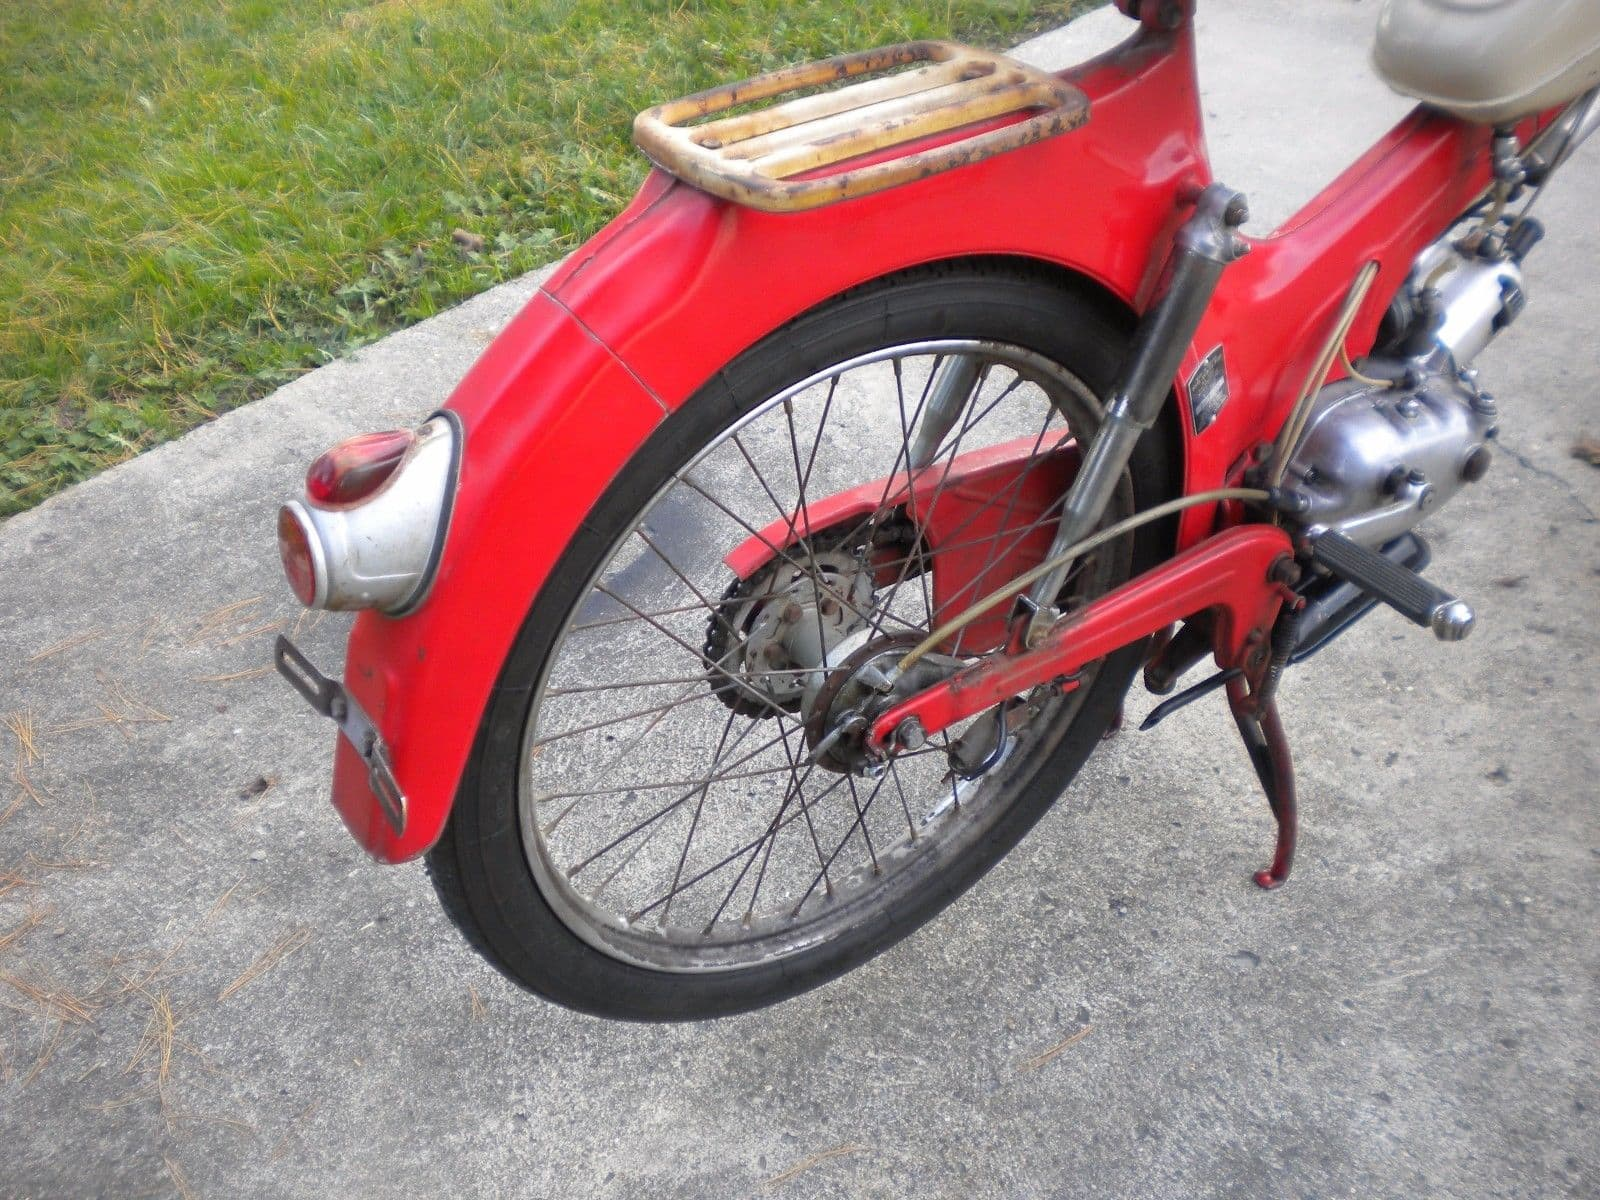 810.94020 Allstate Mo-Ped Puch